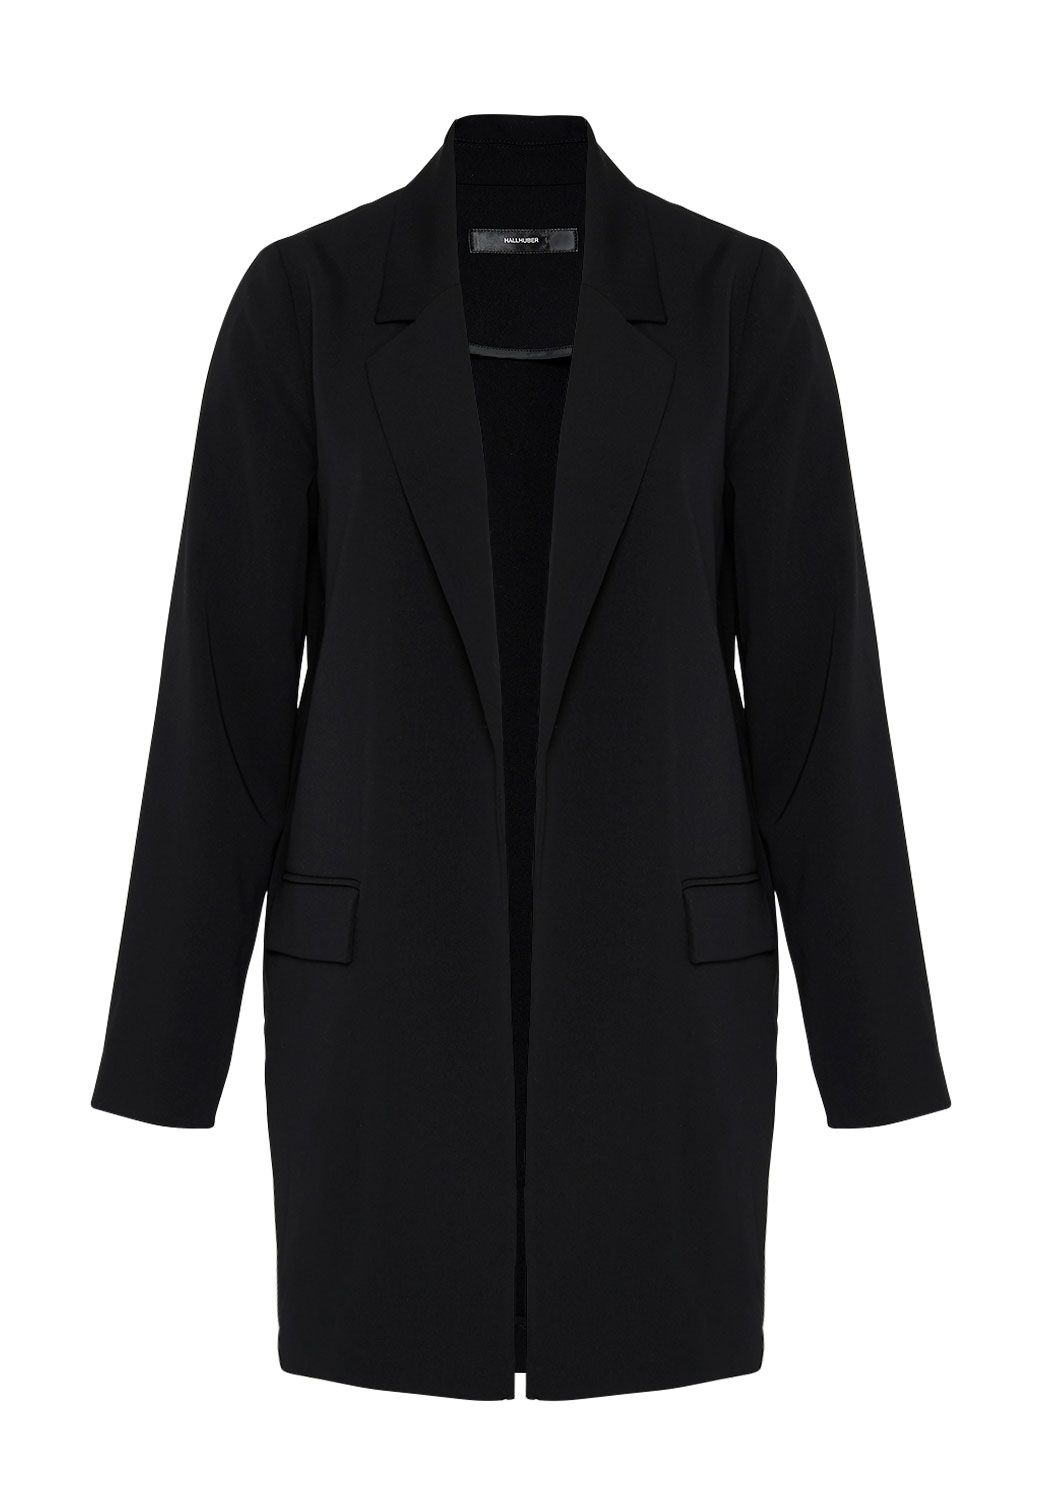 Hallhuber Long Blazer with Open Front, Black